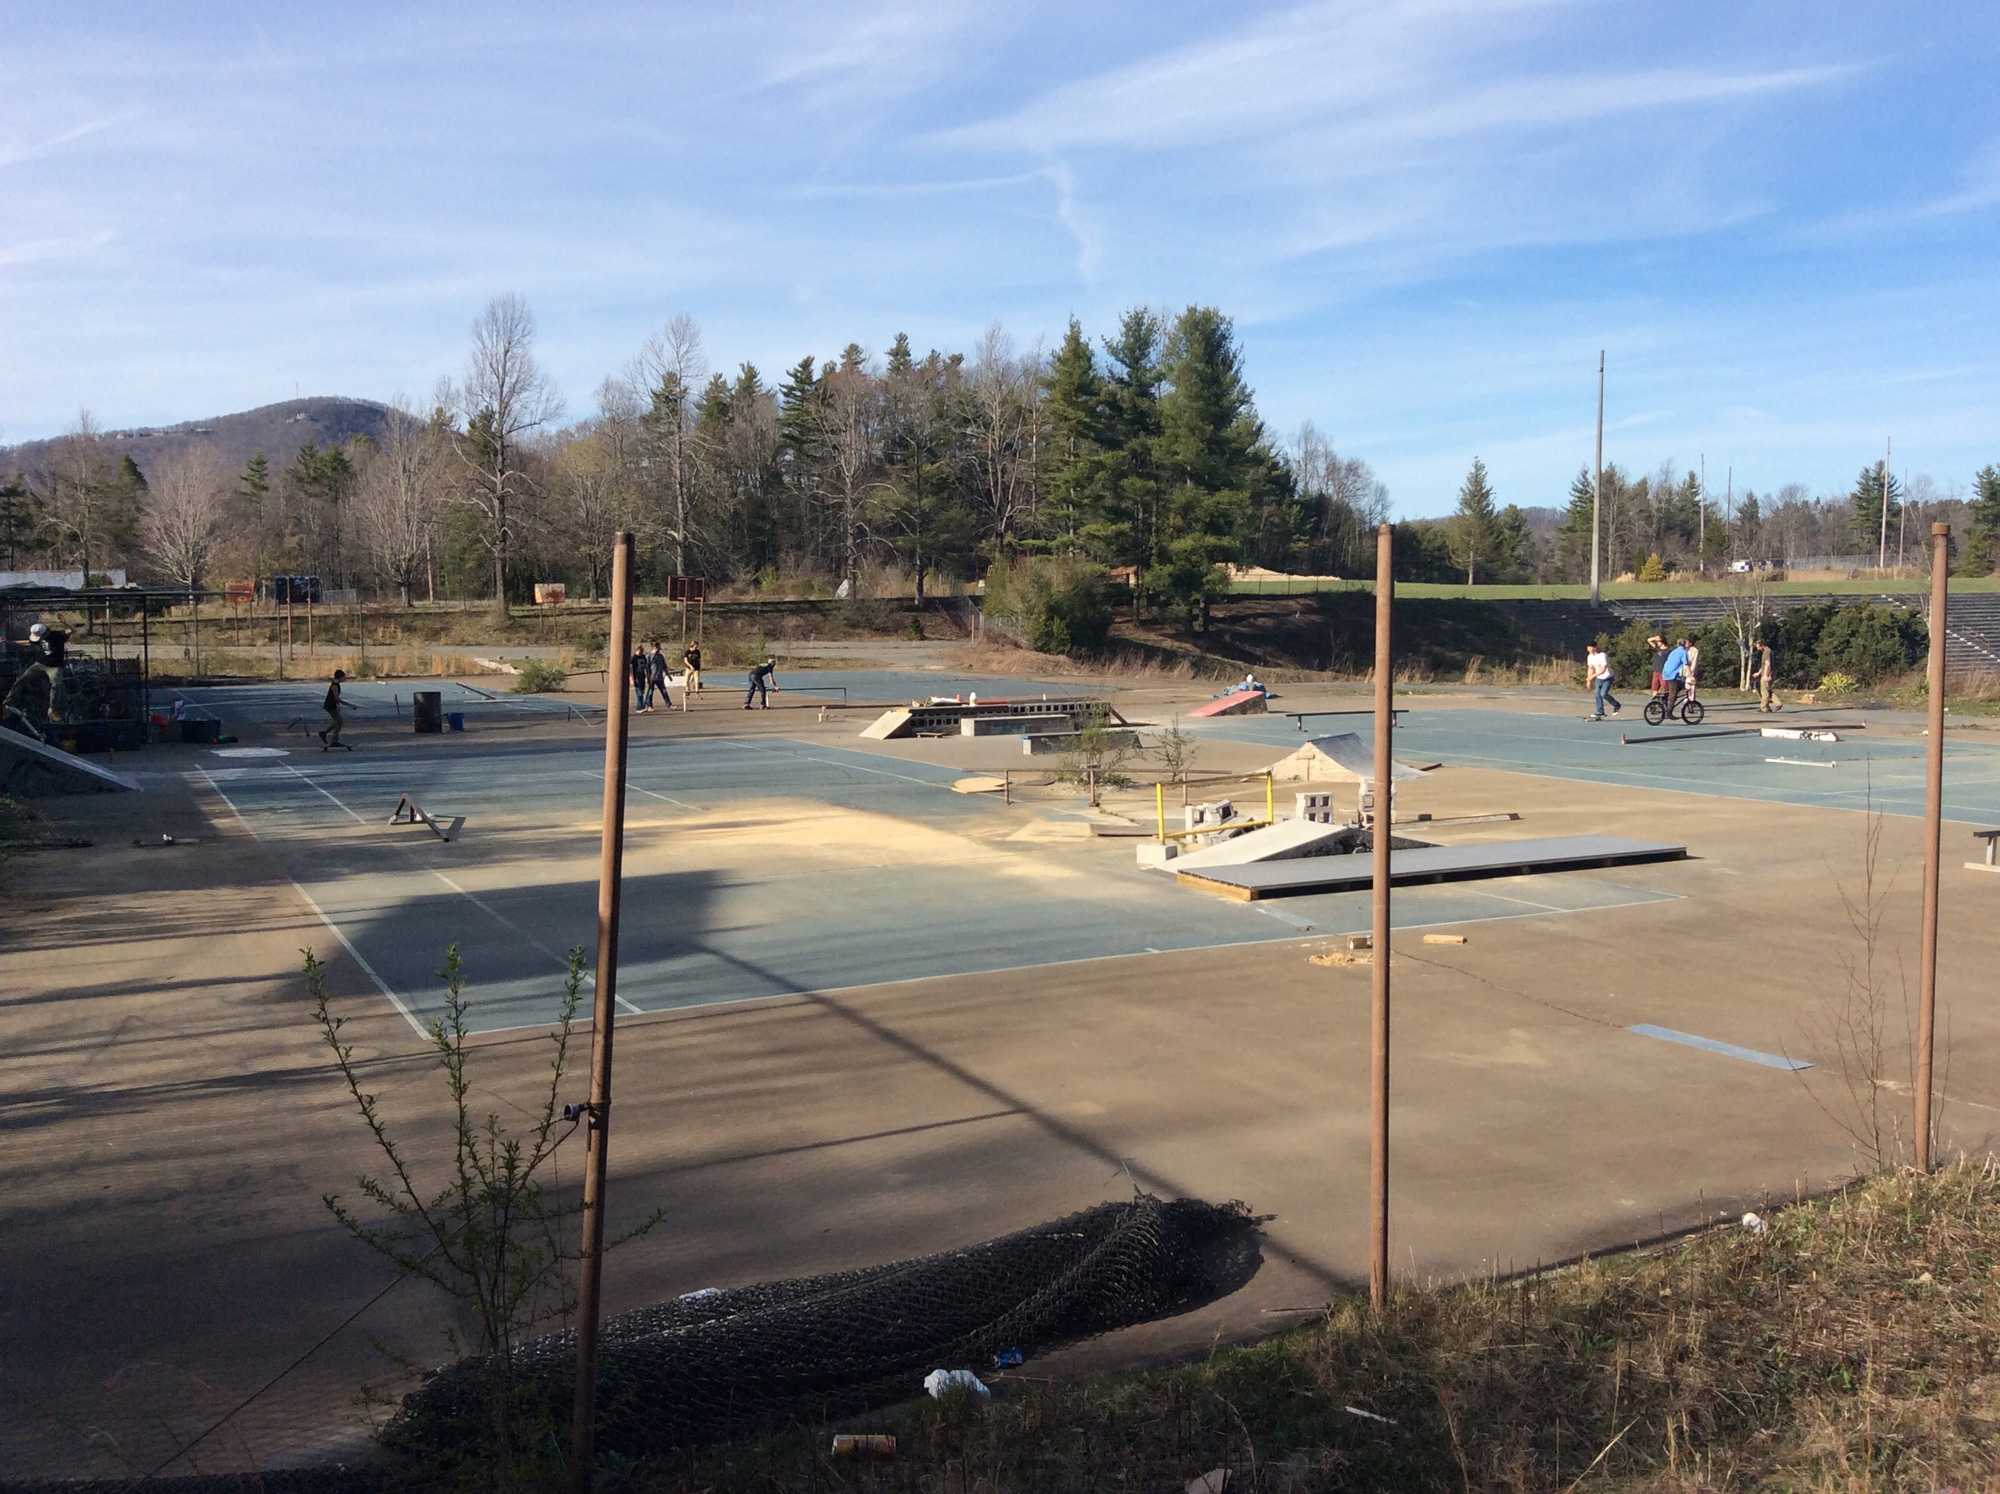 DIY skate park in jeopardy by ASU property purchase